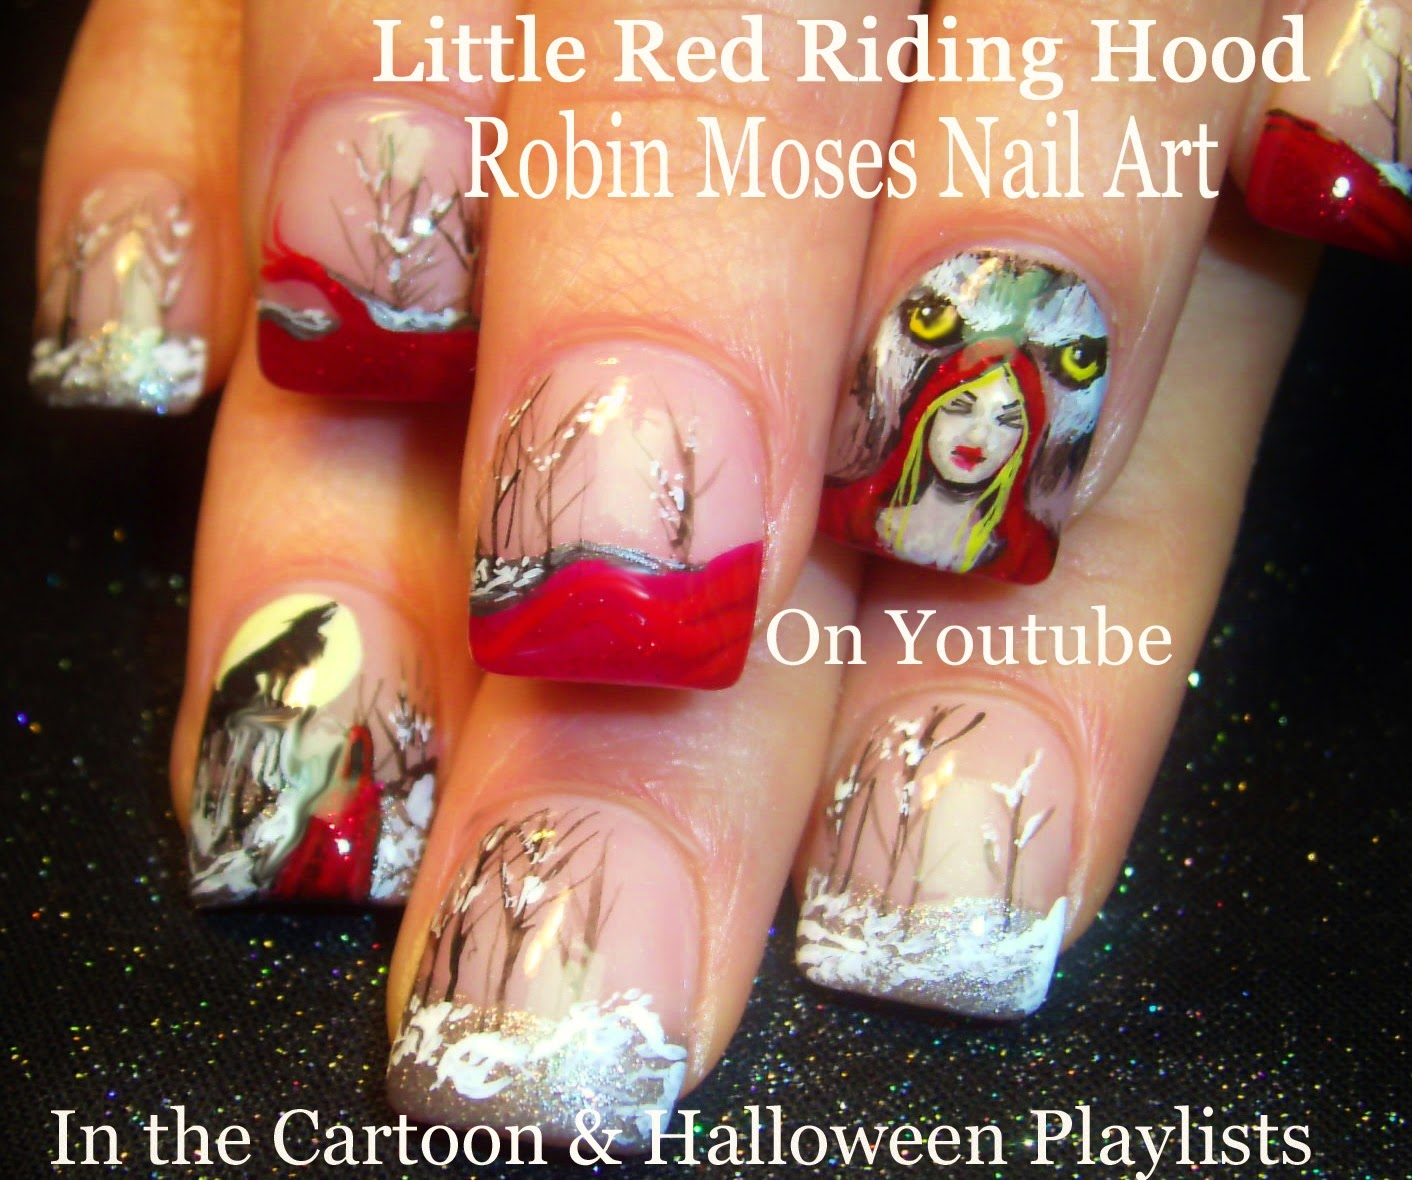 Robin moses nail art little red riding hood red riding hood 3 nail art tutorials diy halloween nail designs little red riding hood prinsesfo Gallery